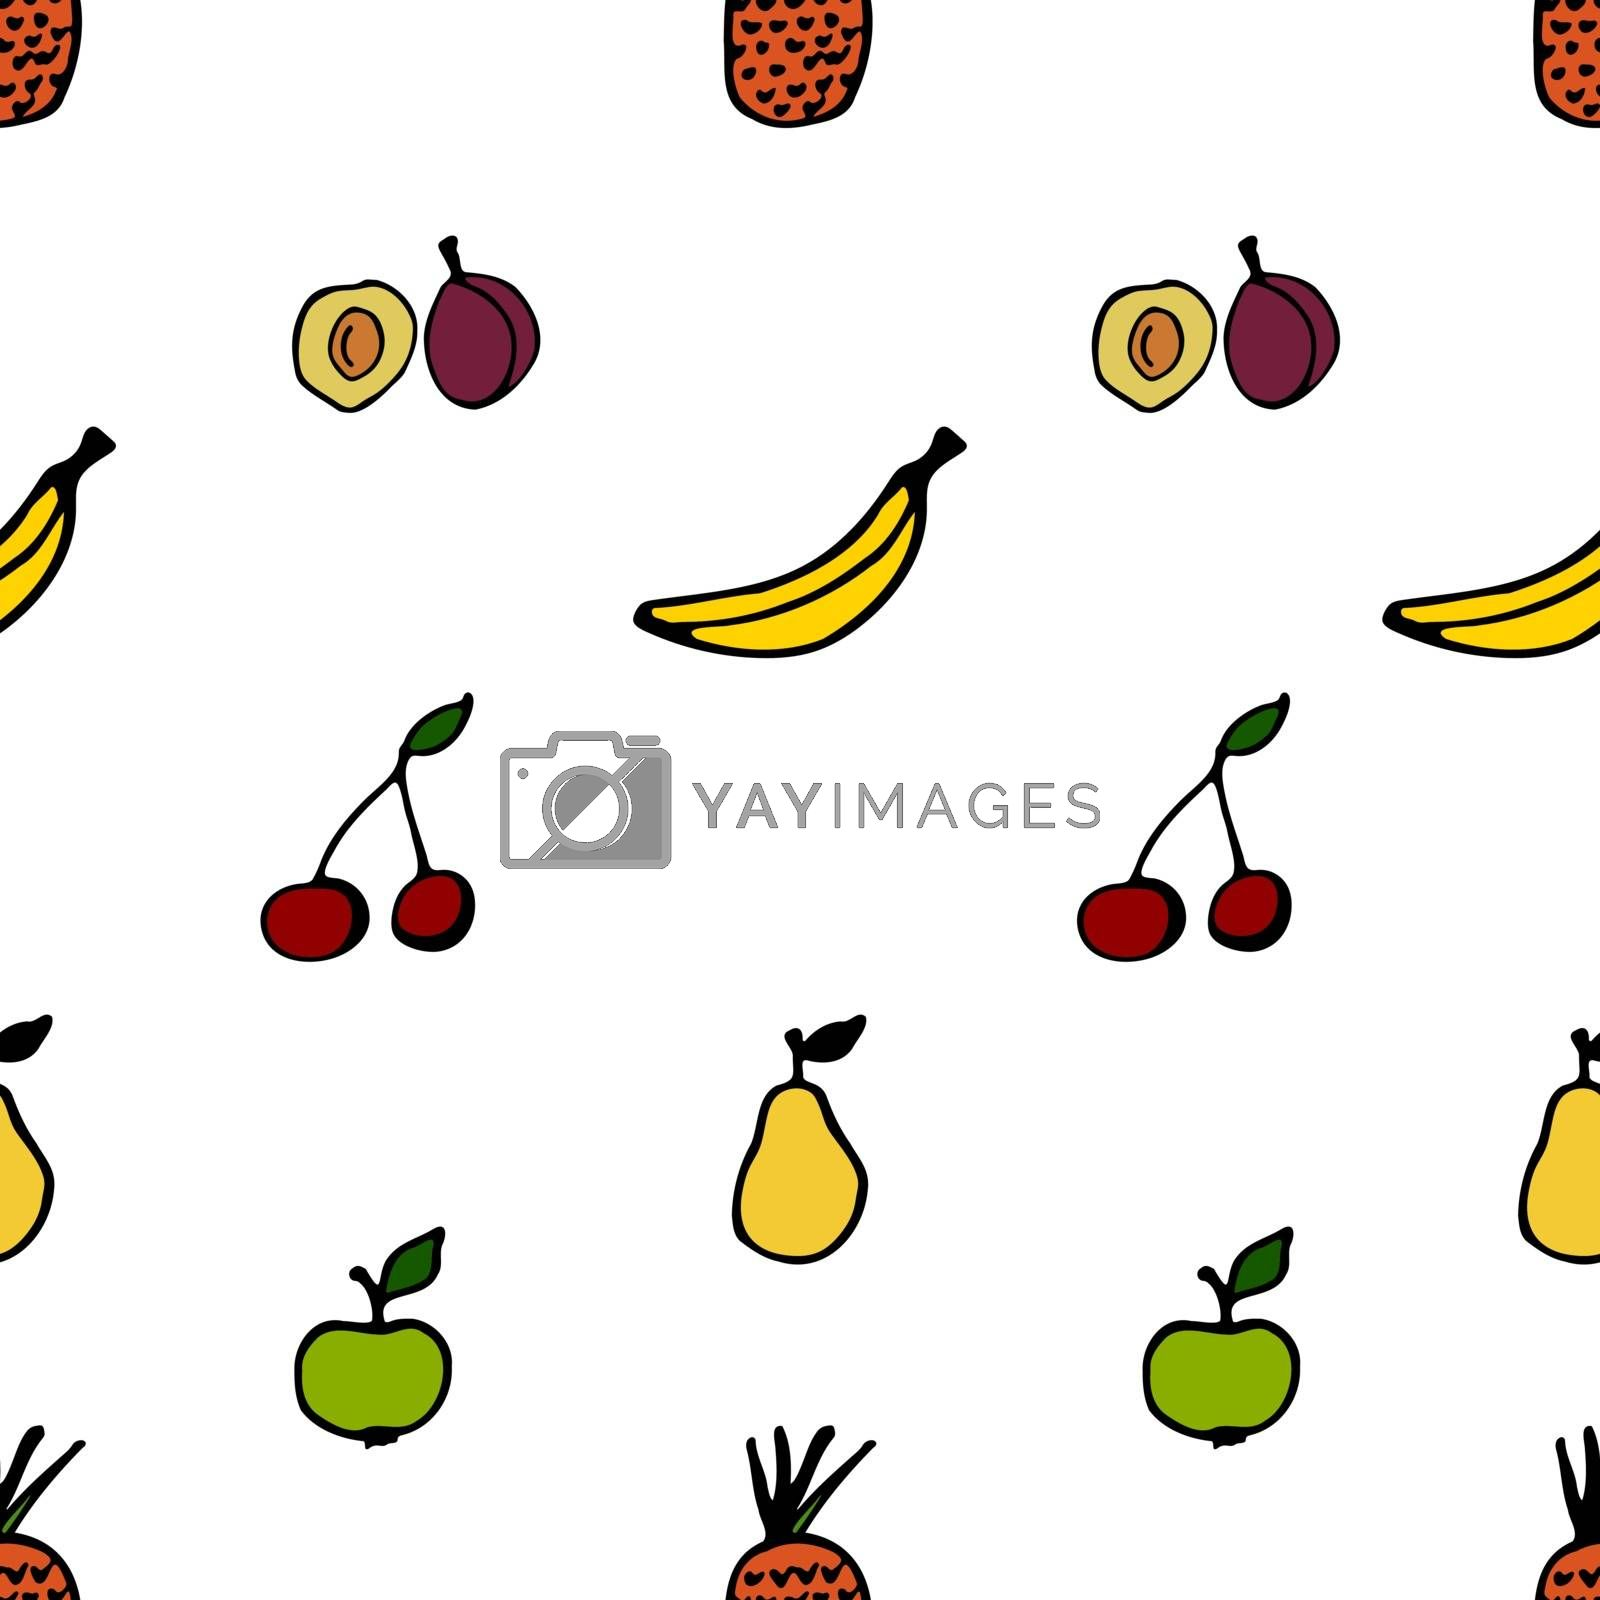 Seamless fruit pattern. Vector illustration including apples, pears, plums, bananas, pineapples and cherries.